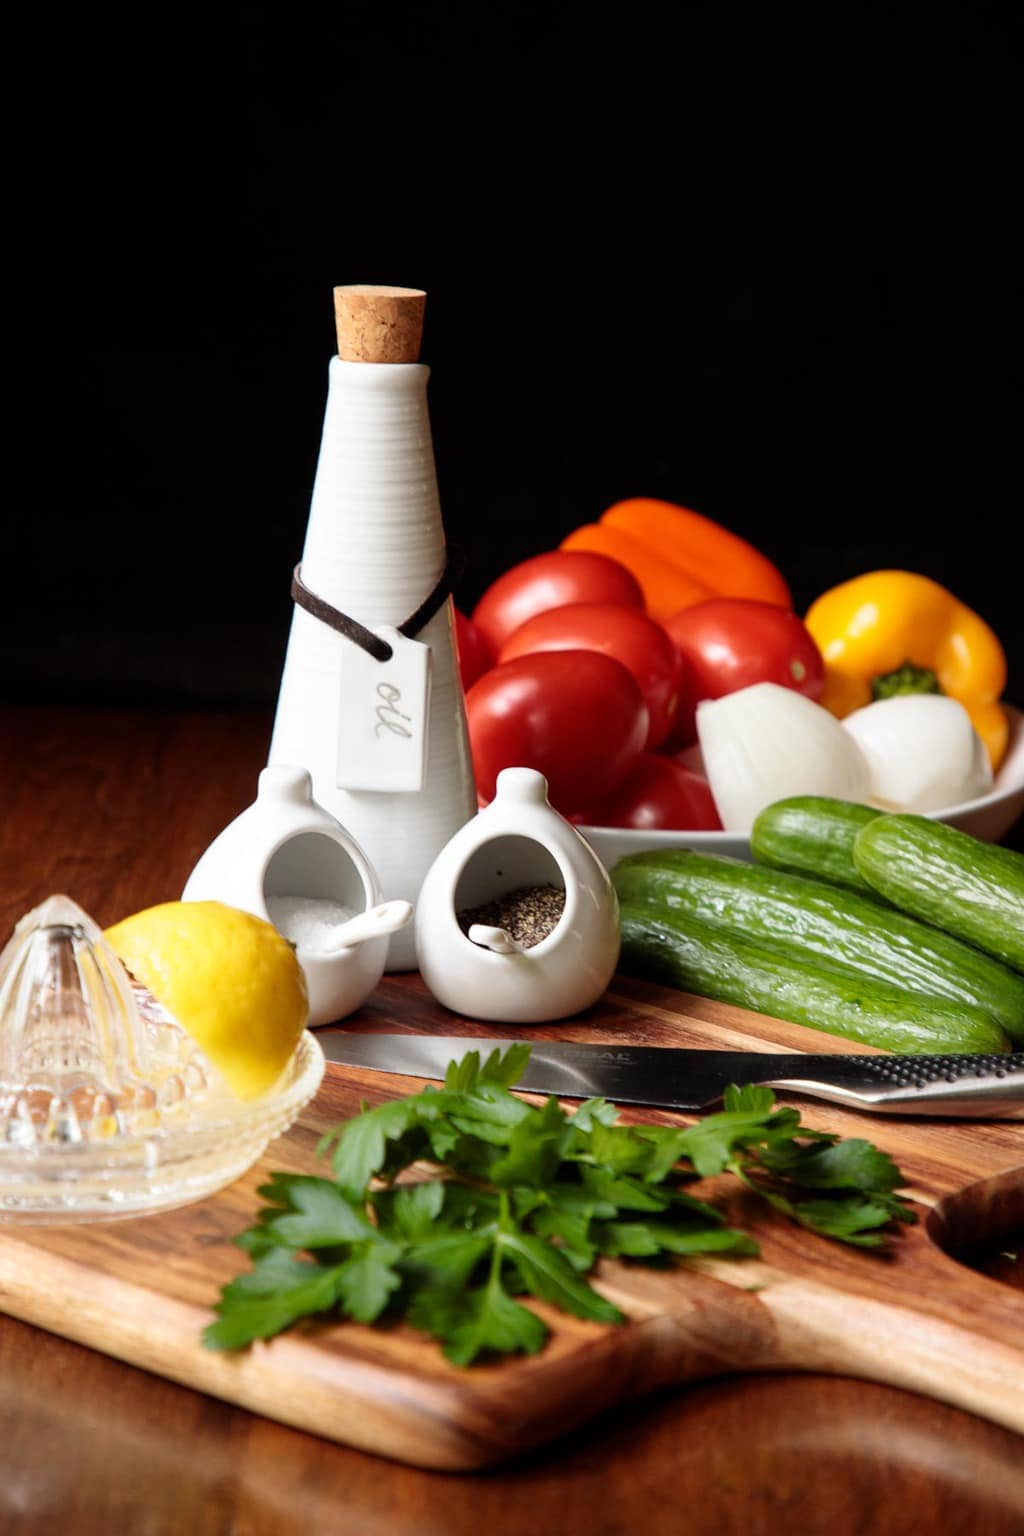 Photo of the ingredients used in the making of a Turkish Tomato Cucumber Salad.